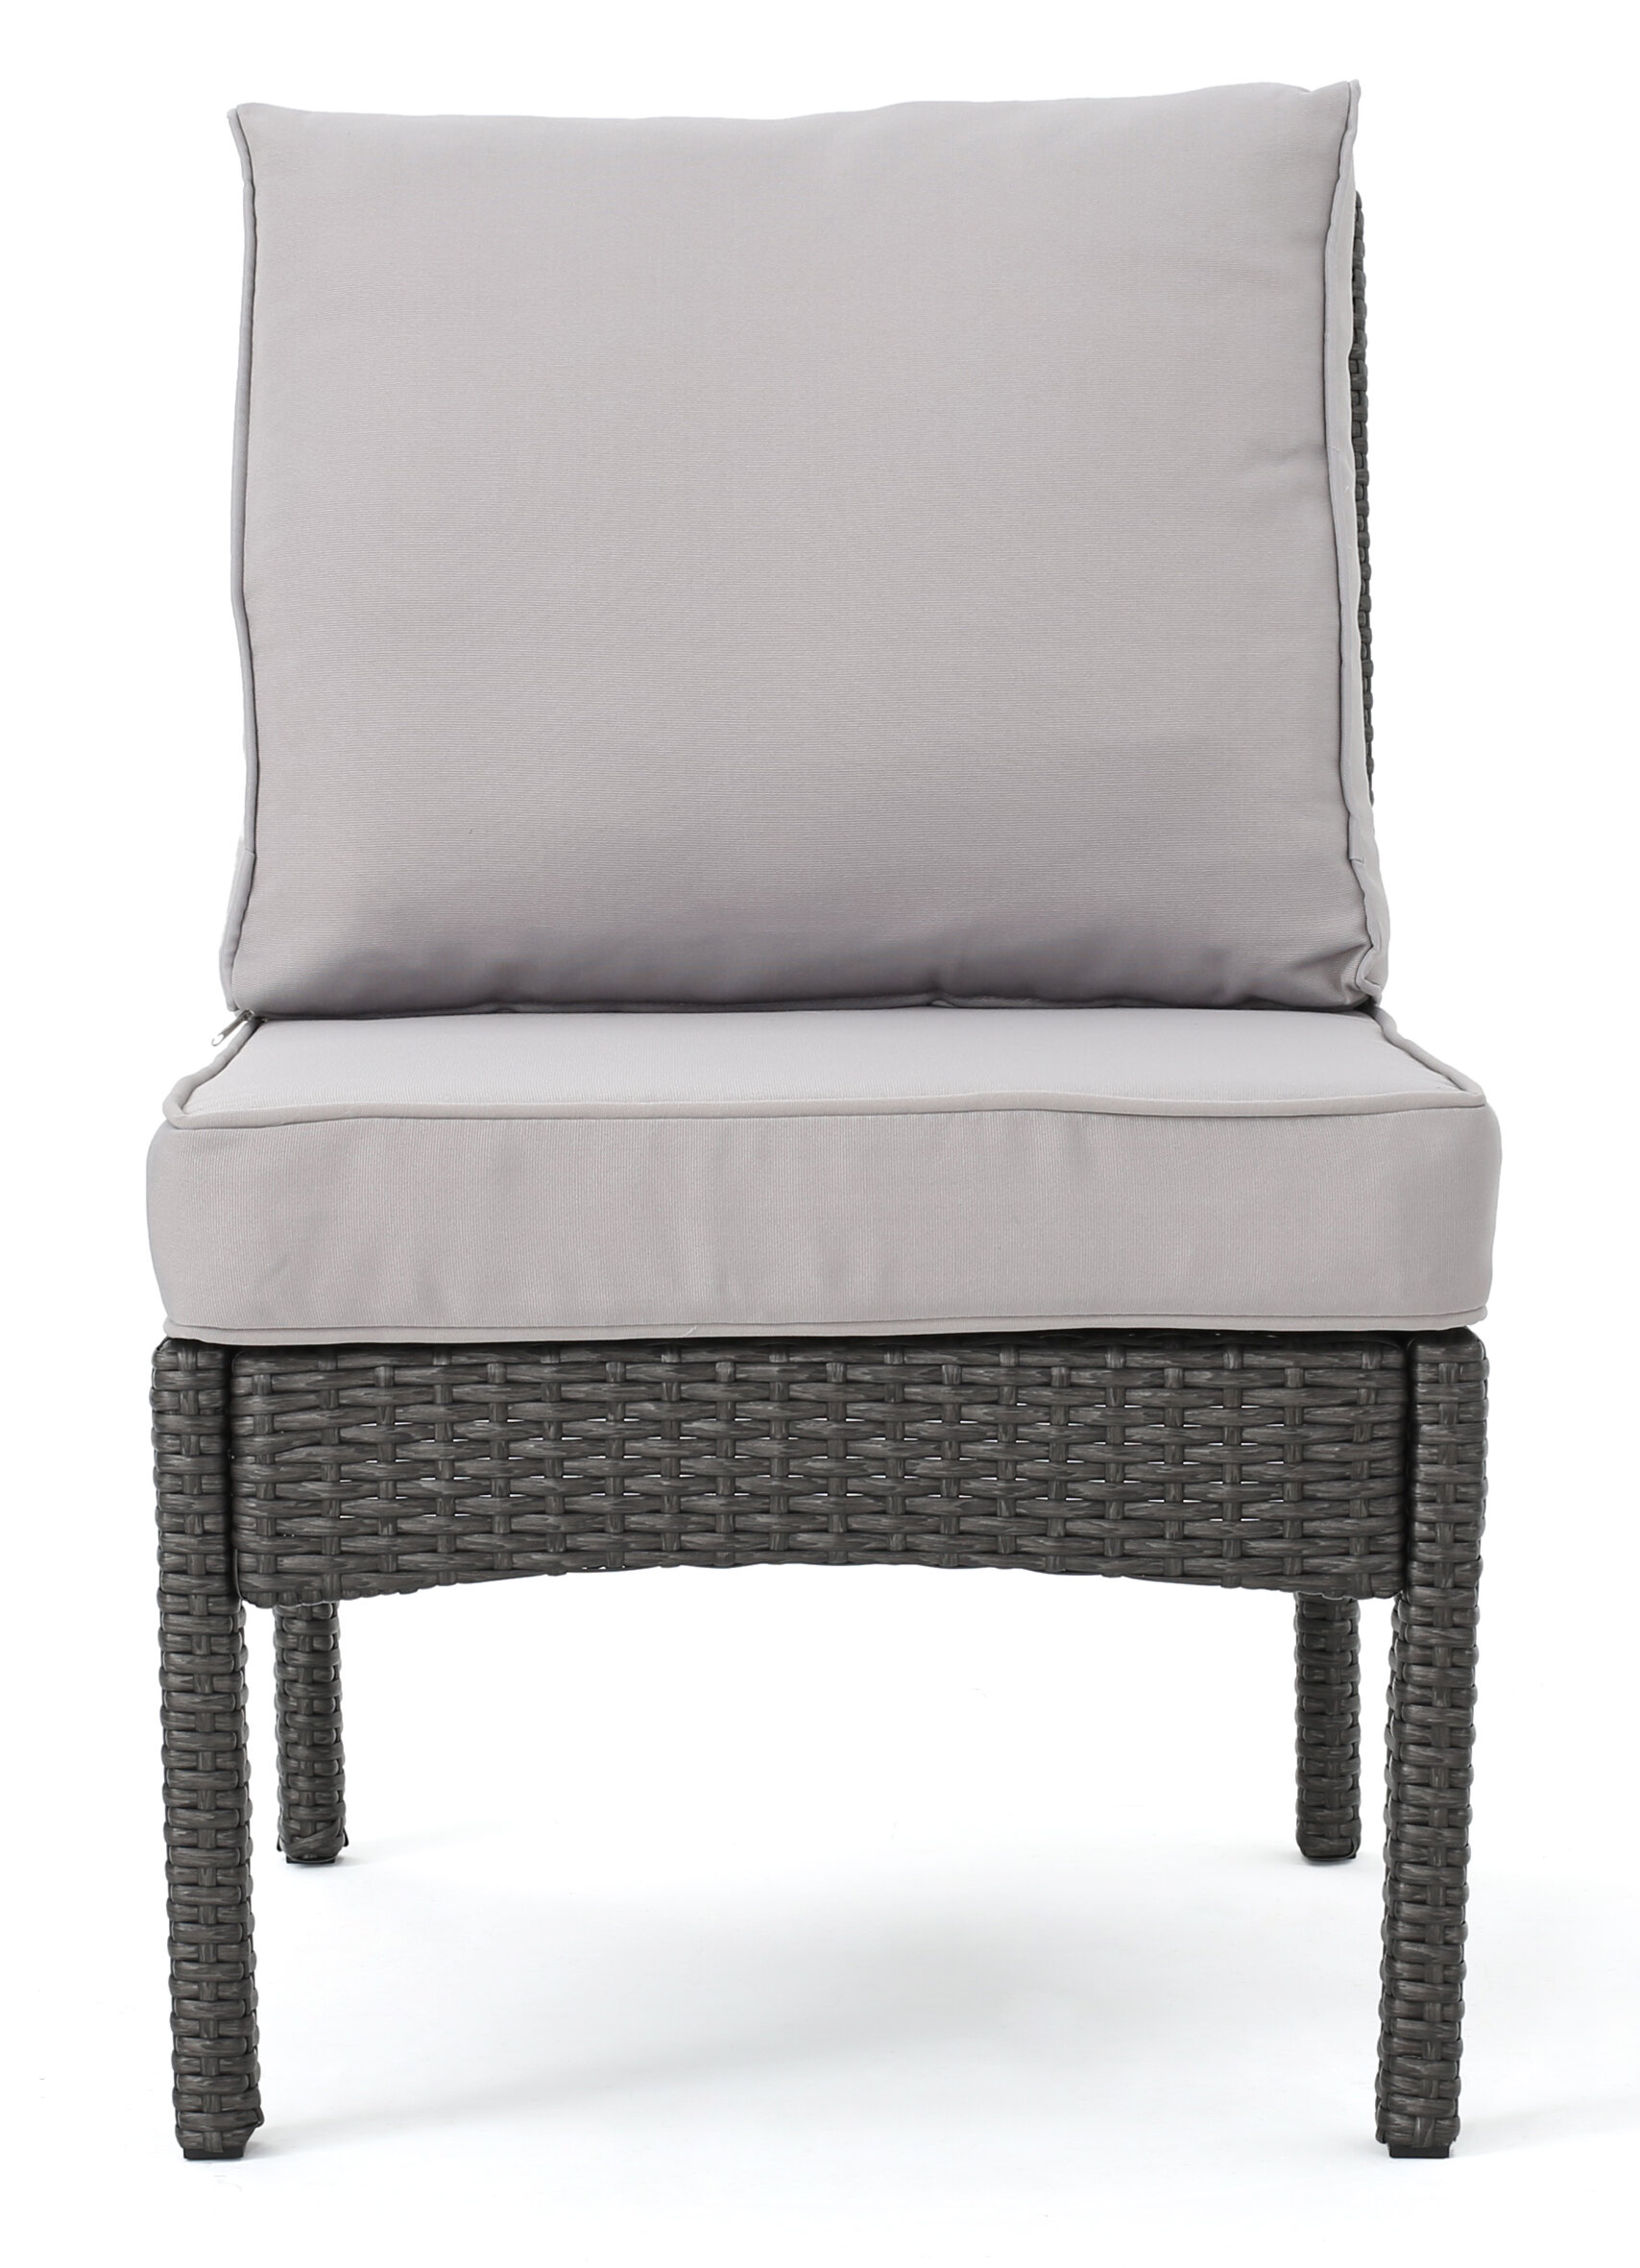 Darby Home Co Dia Outdoor Wicker Armless Sectional Sofa Seat With Cushions Wayfair